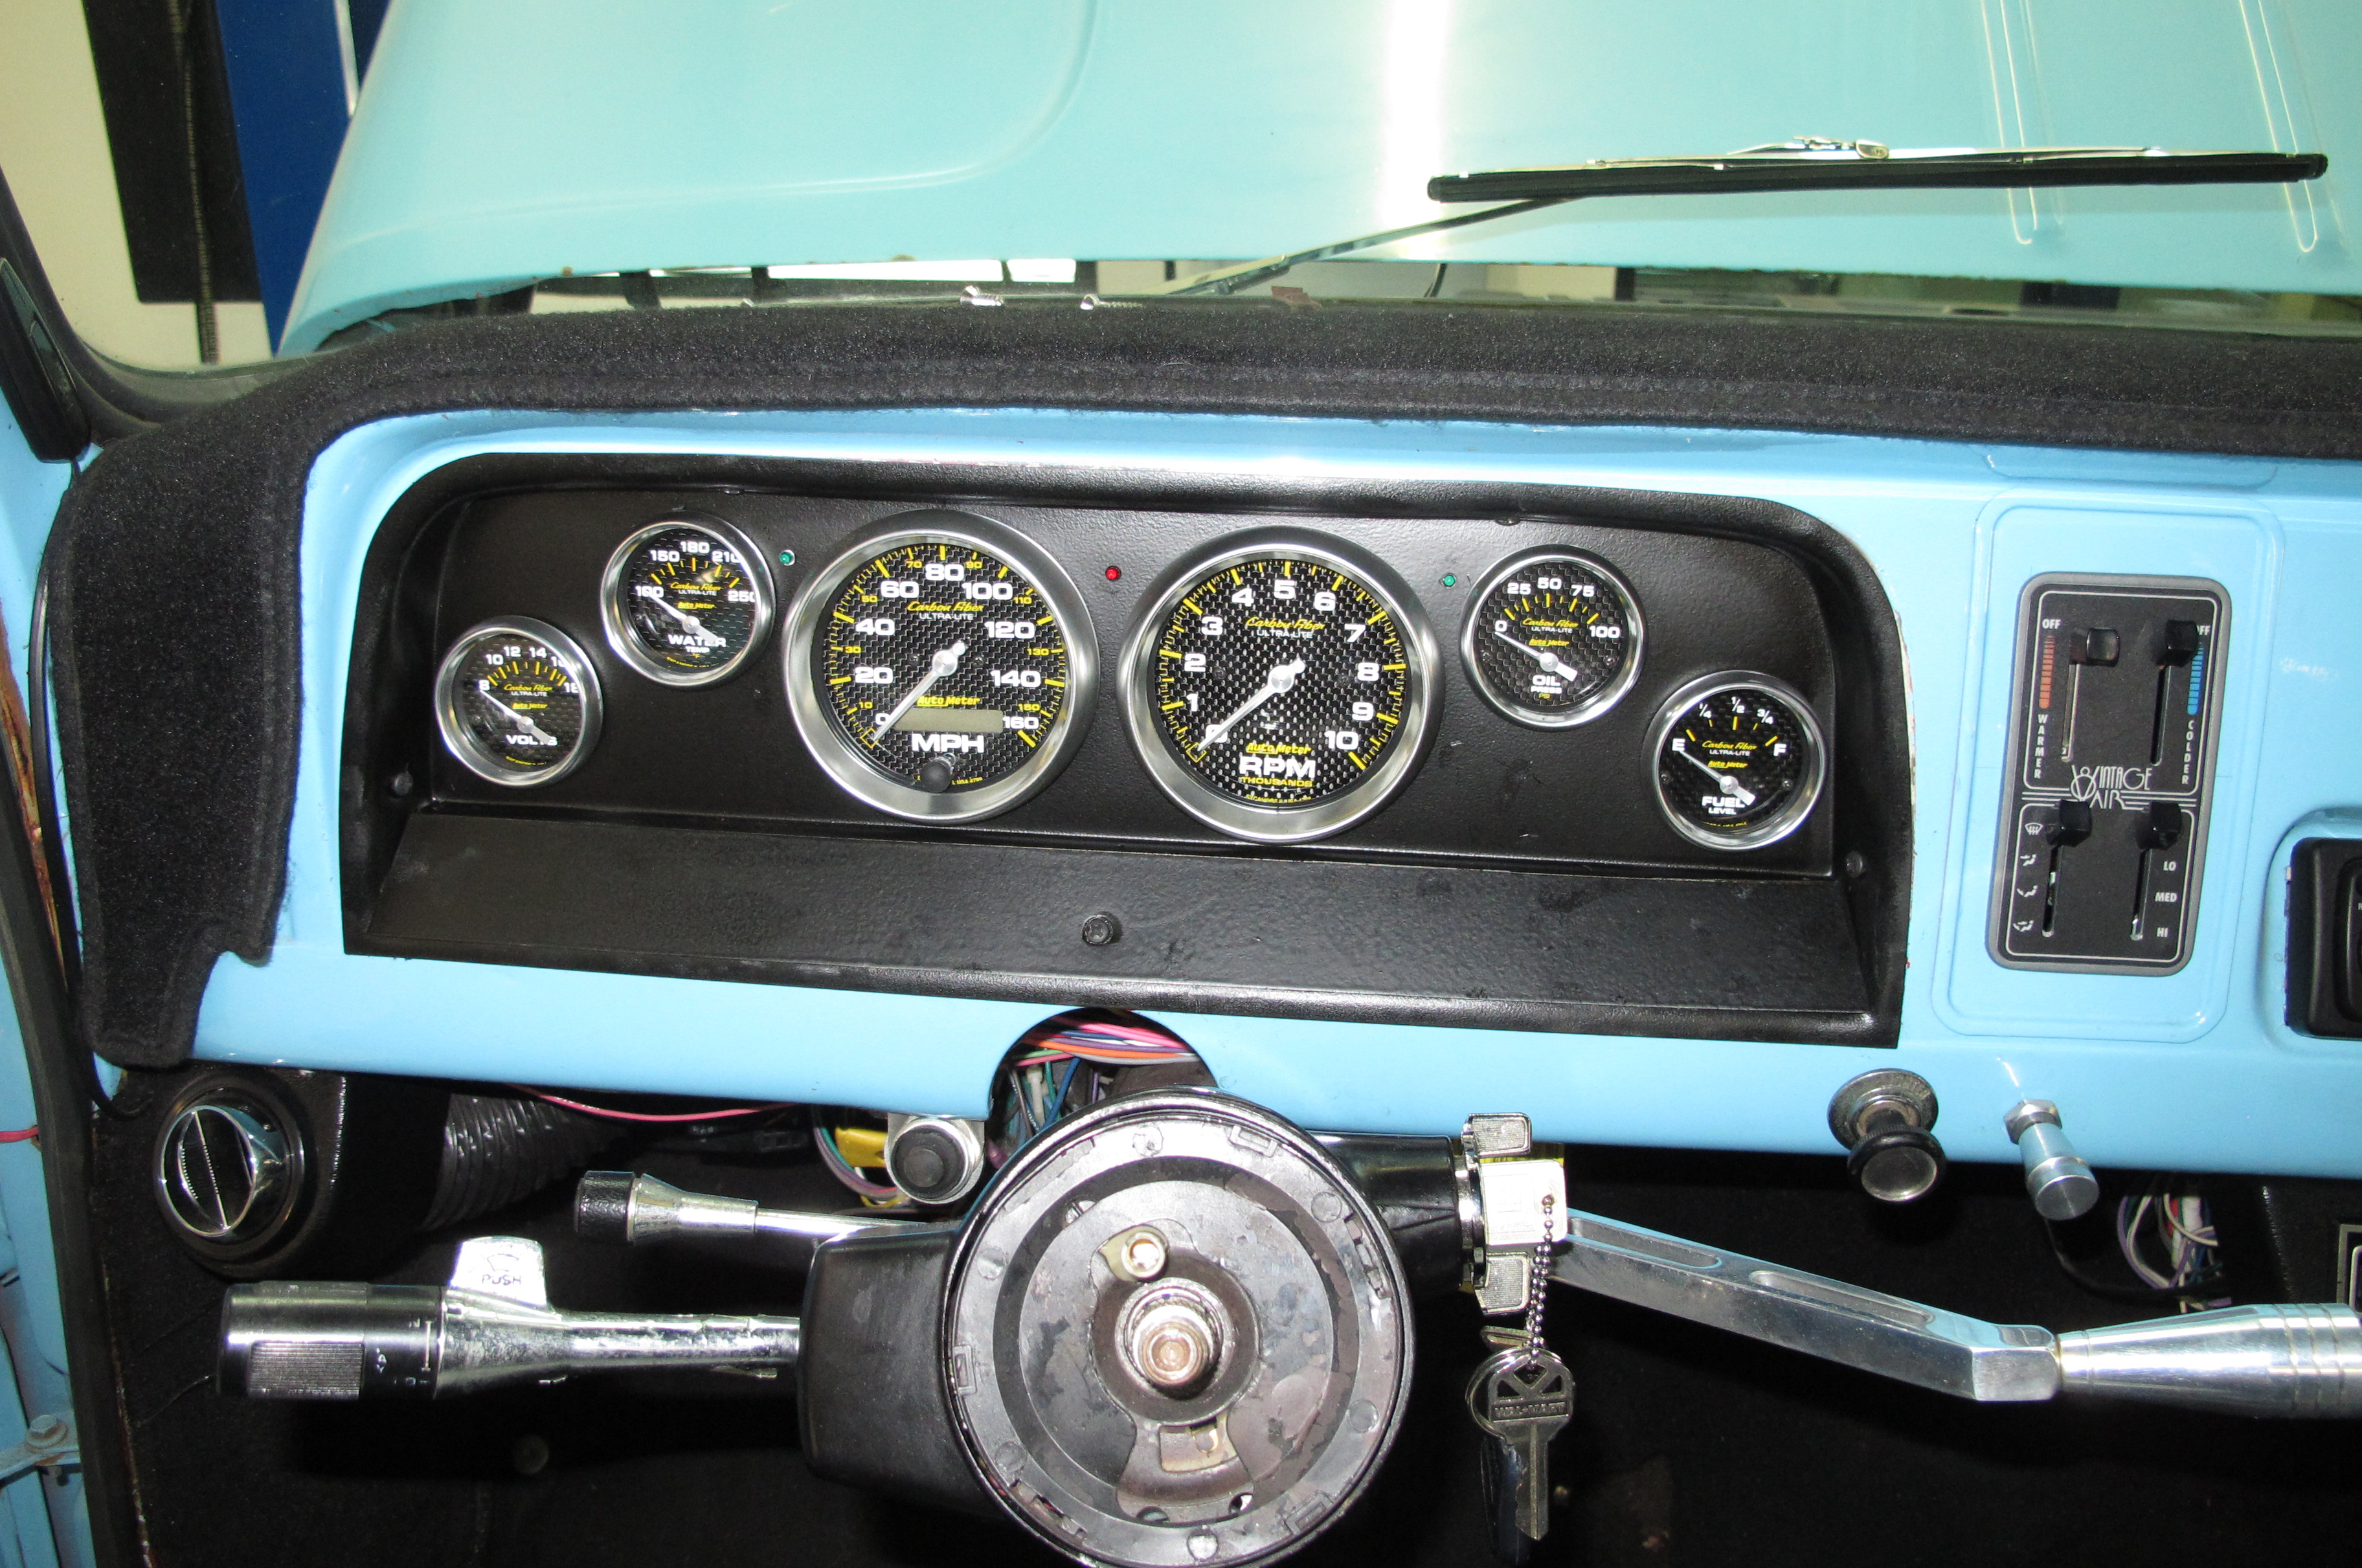 1965 Chevrolet C10 Pickup Gets a New Dash by Classic Dash